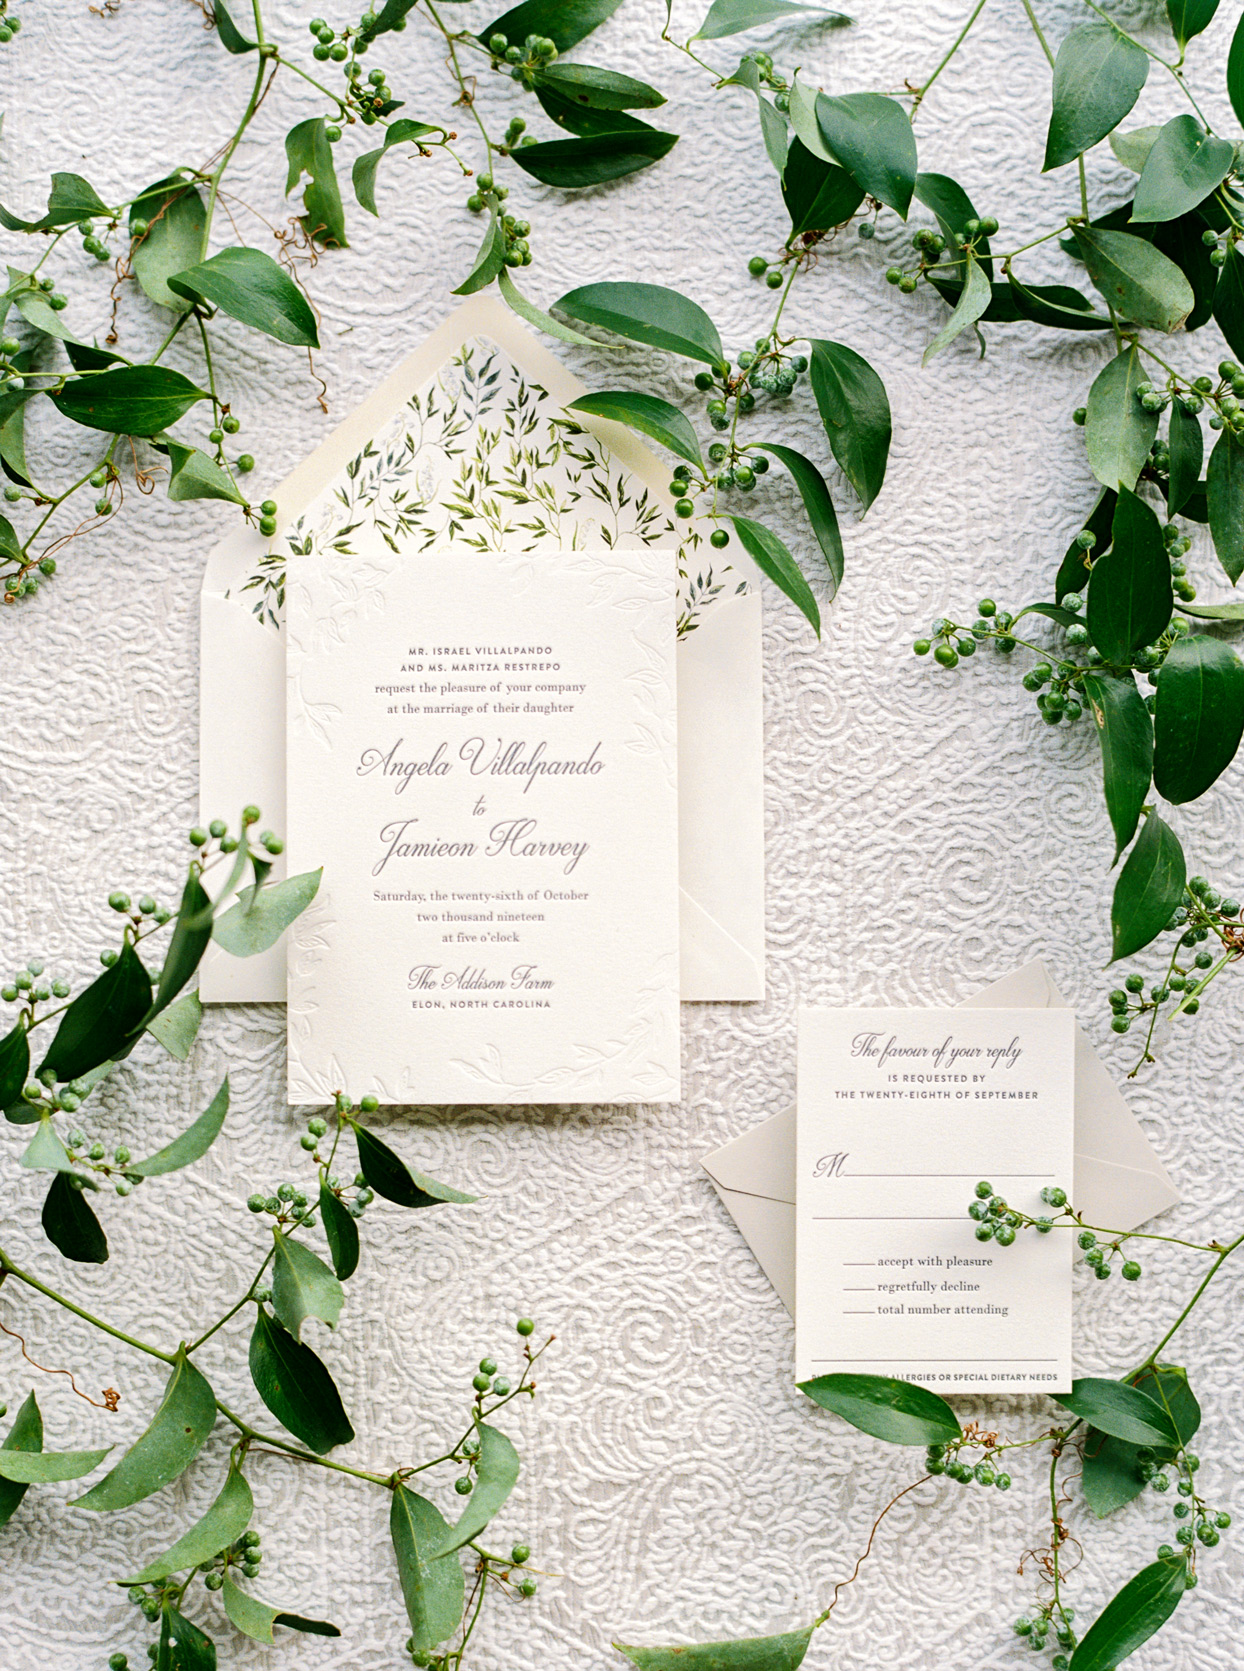 off-white wedding invites with greenery accents